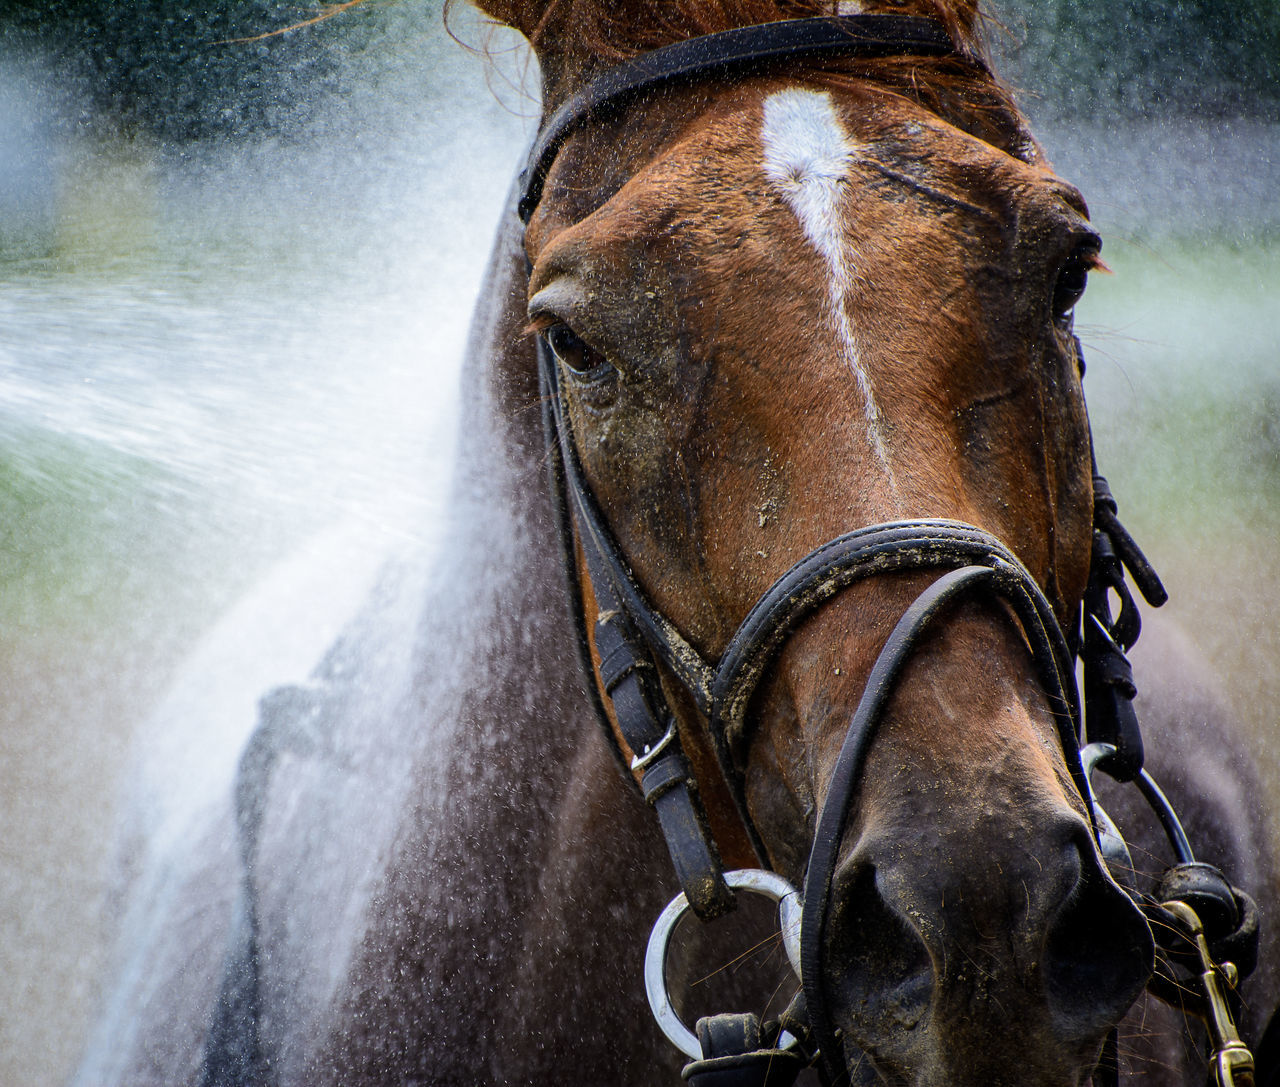 A thoroughbred horse gets a bath after a race Animal Head  Animal Themes Brown Close-up Equus Caballus Przewalskii Horse Horse Bathi Horse Bathing Horse Racing Mammal No People One Animal Outdoors Thoroghbredracing Thoroughbred